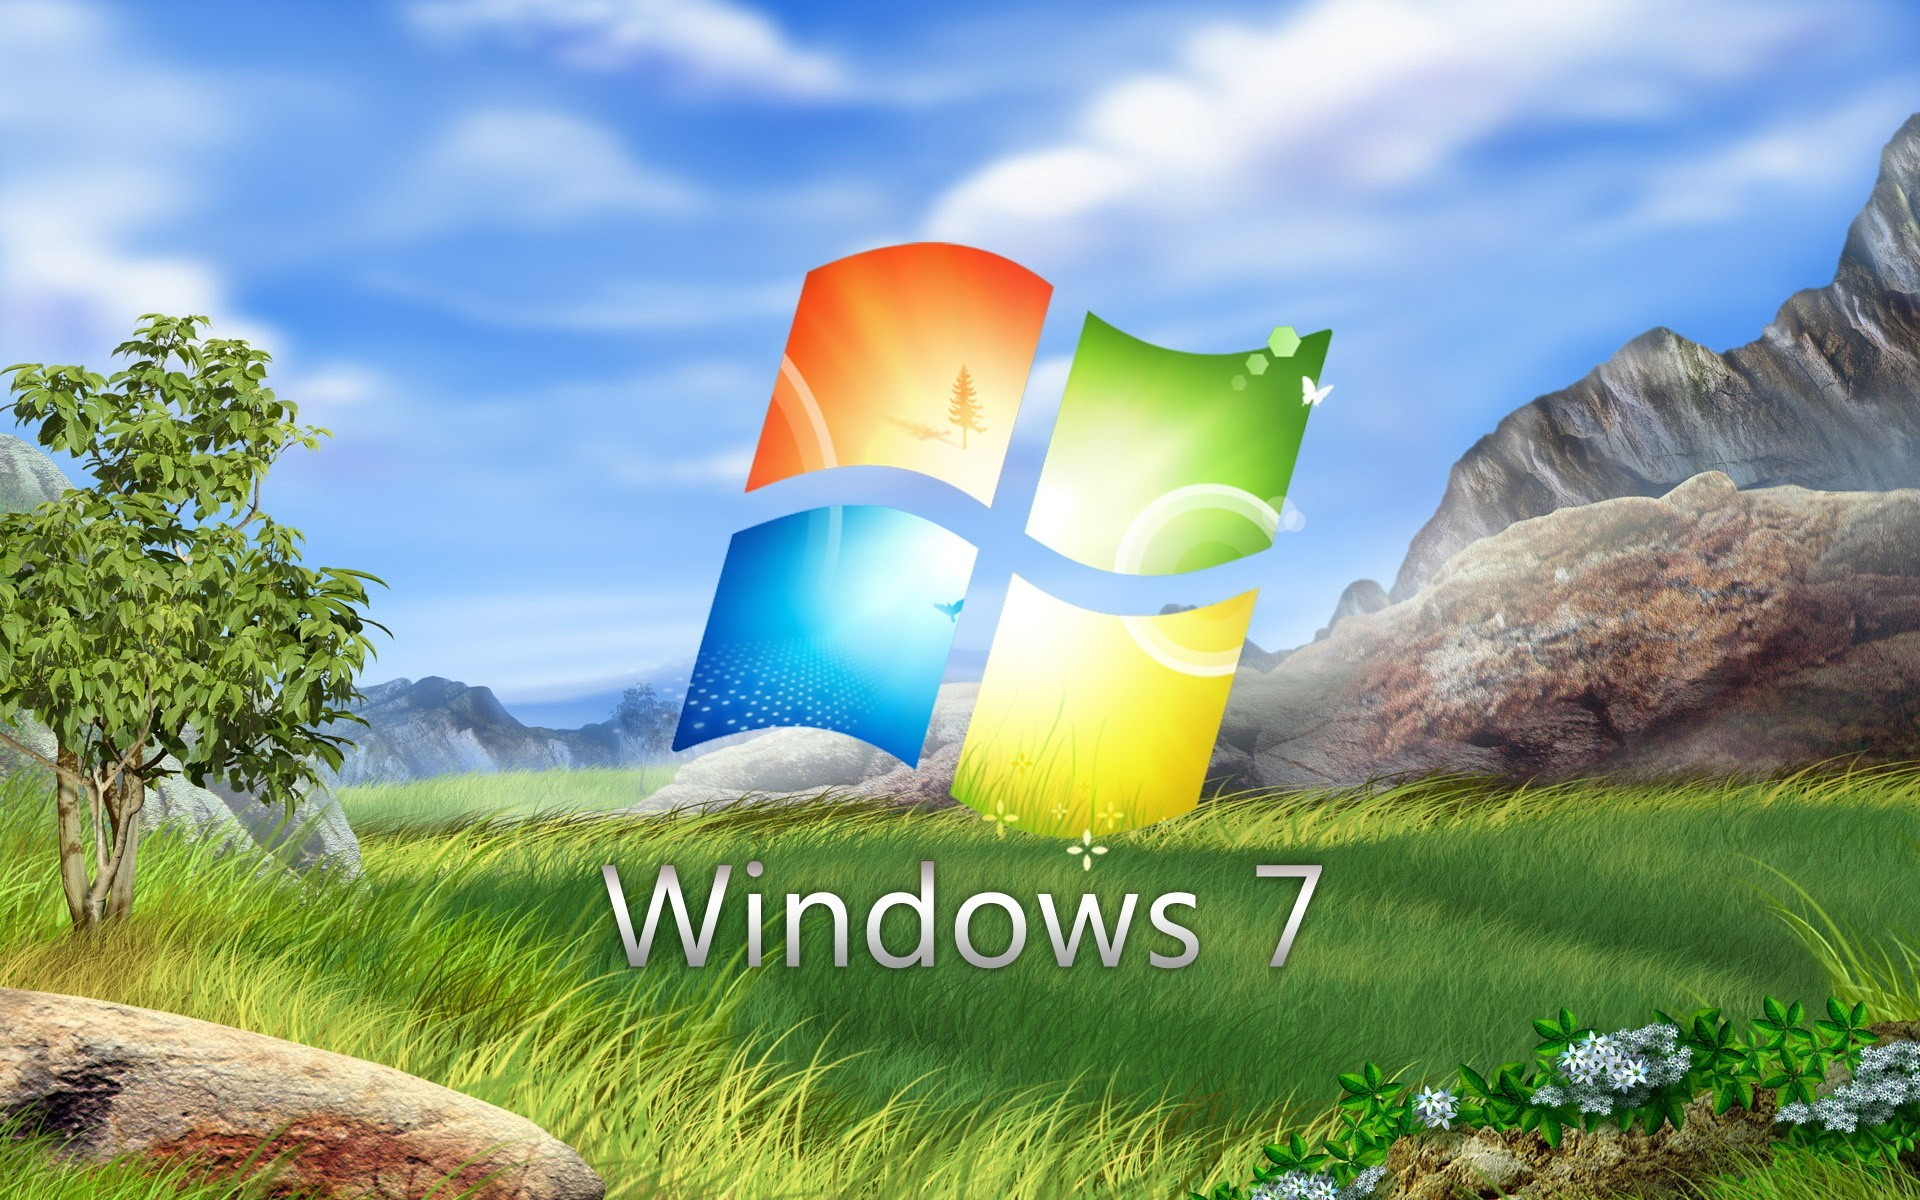 logo windows 7 on a glade with flowers. desktop wallpapers for free.